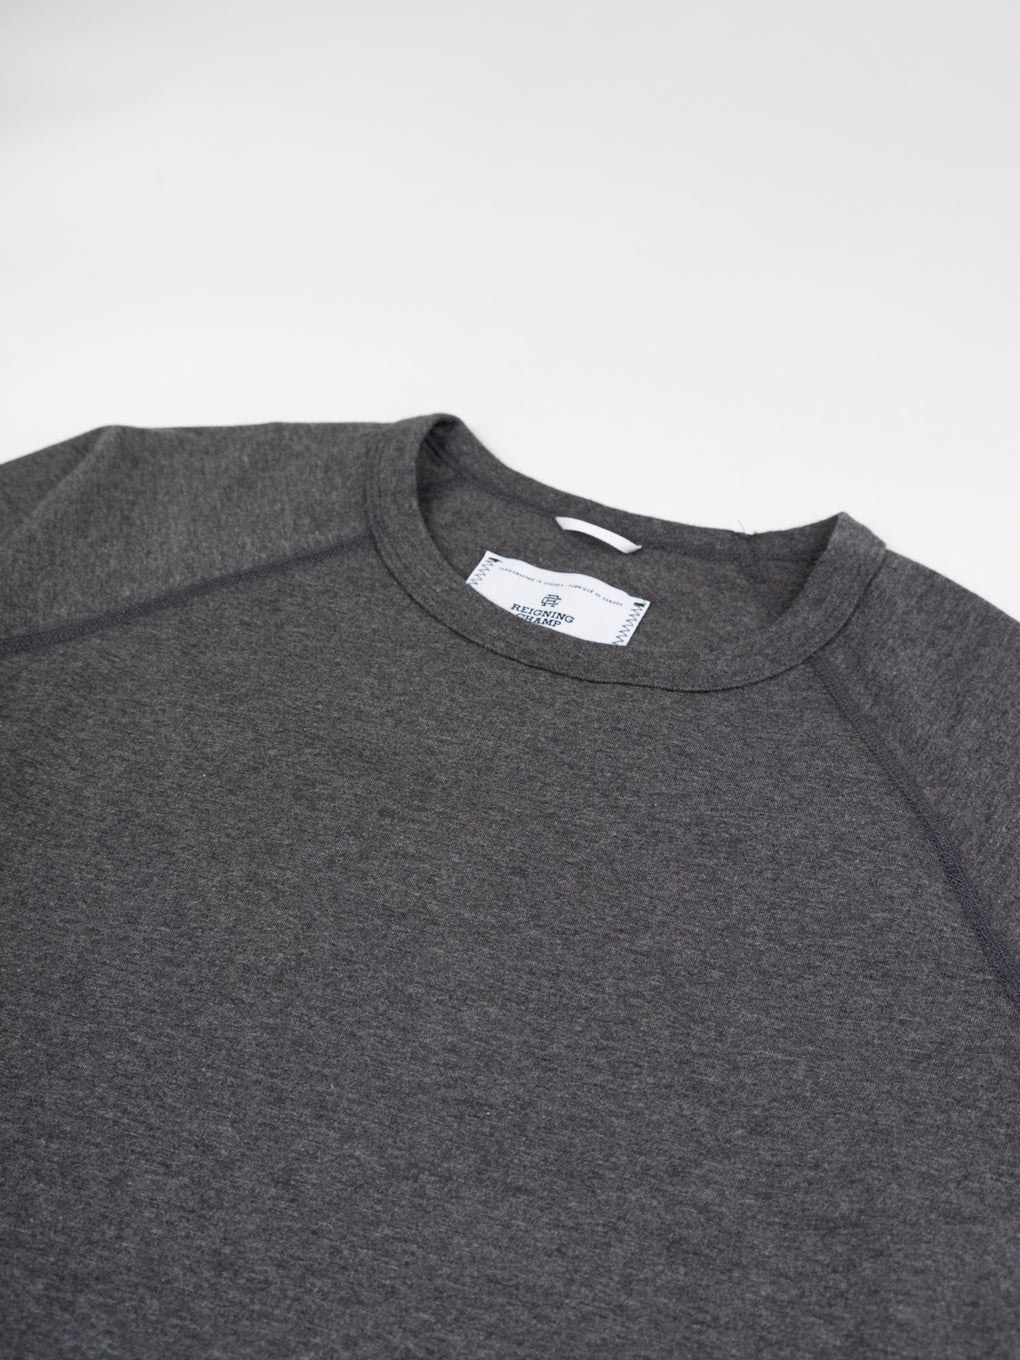 Cotton Jersey Raglan Tee Heather Charcoal